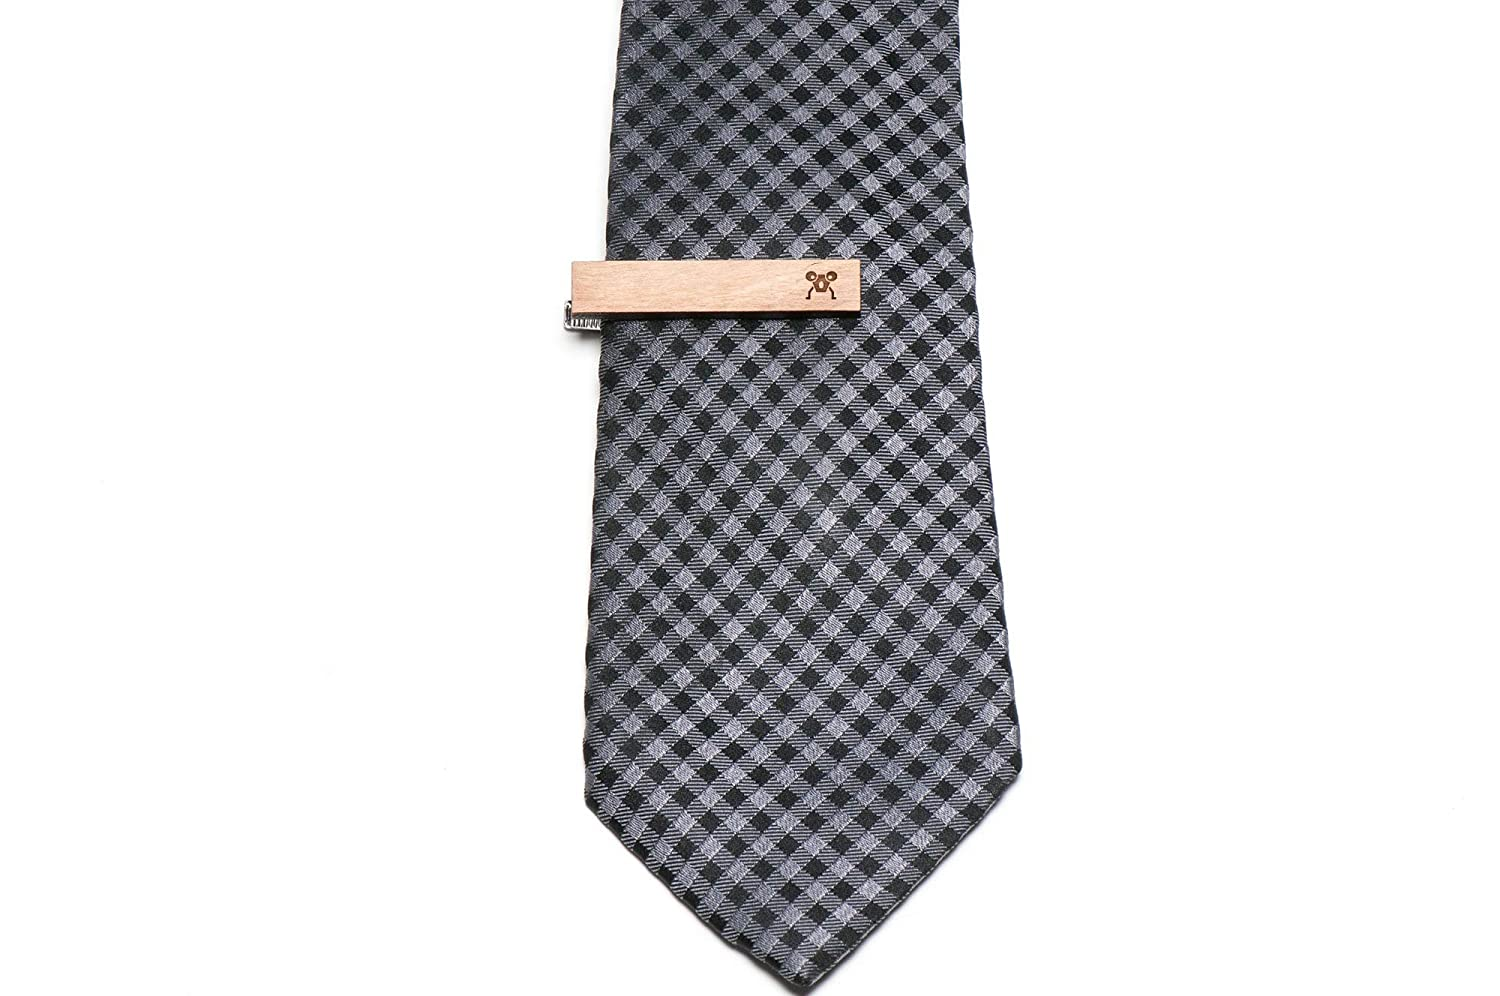 Wooden Accessories Company Wooden Tie Clips with Laser Engraved Robotic Machine Design Cherry Wood Tie Bar Engraved in The USA